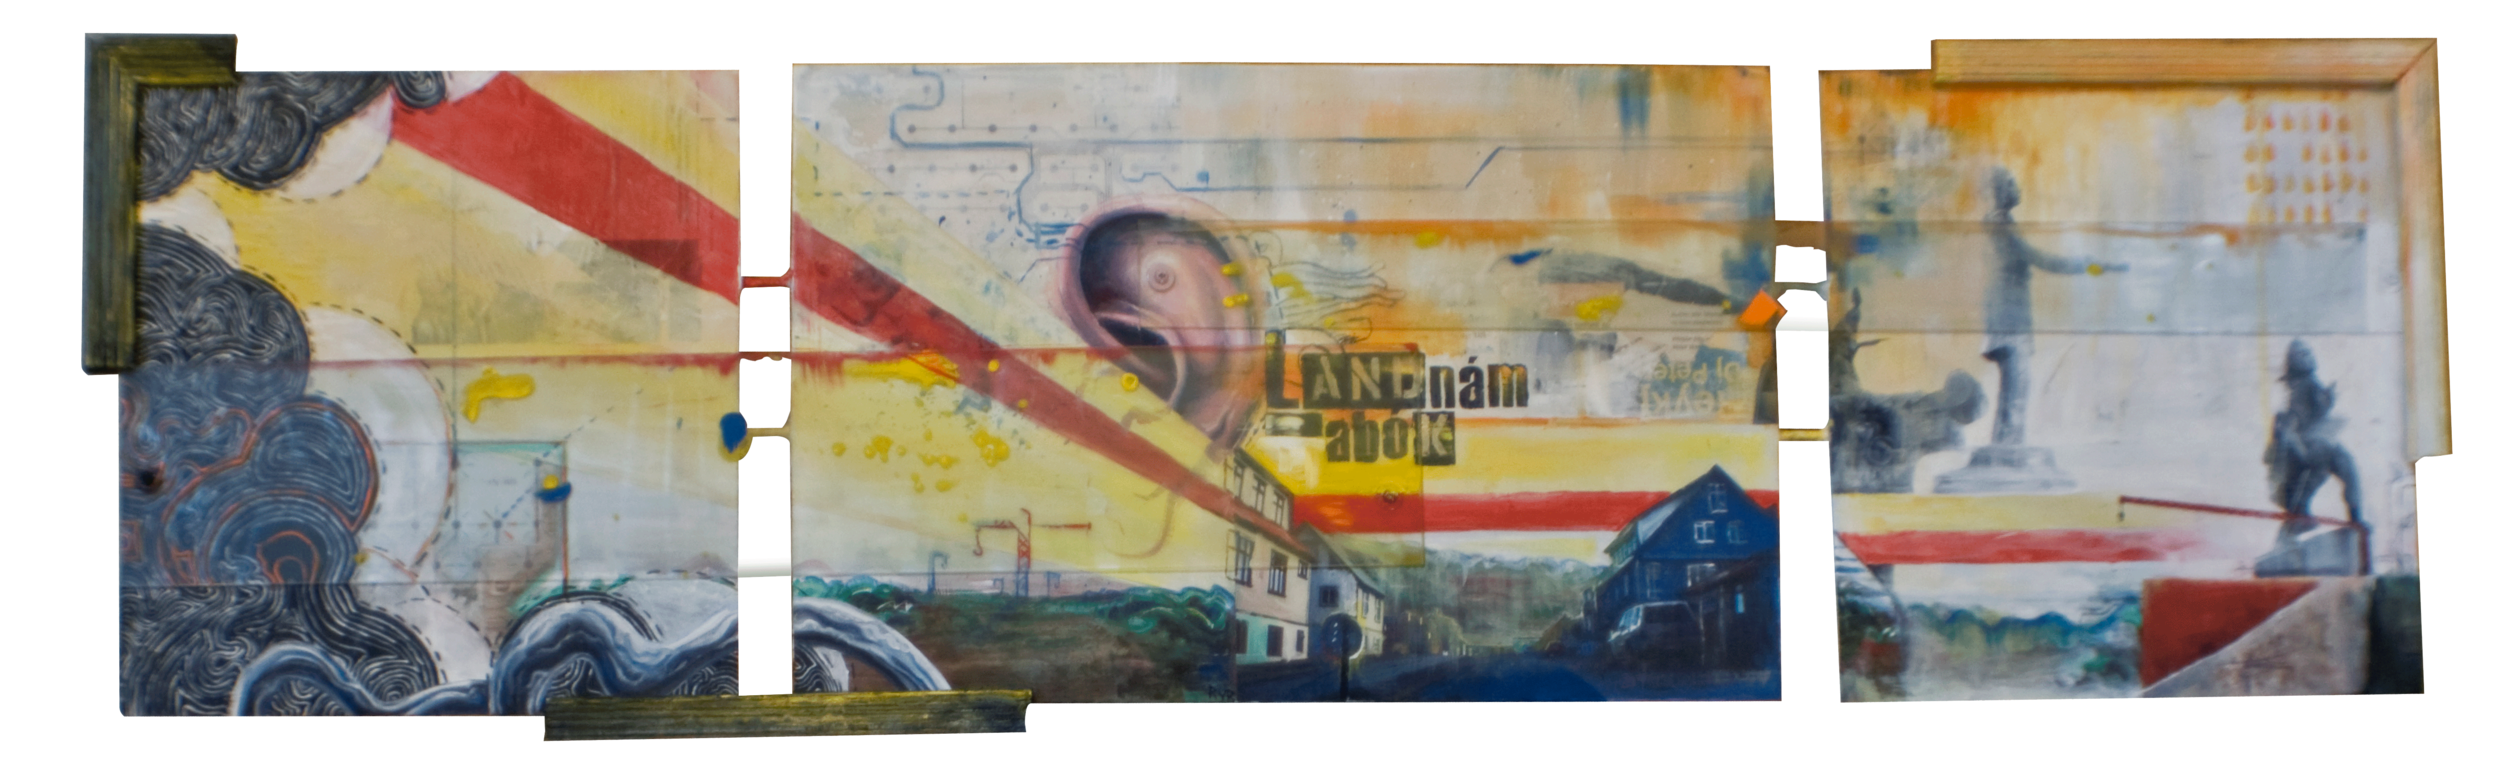 "THE BOOK OF SETTLEMENT 44""x13.5"". ACRYLIC PAINT,  PAPER COLLAGE & PLEXI ON WOOD"